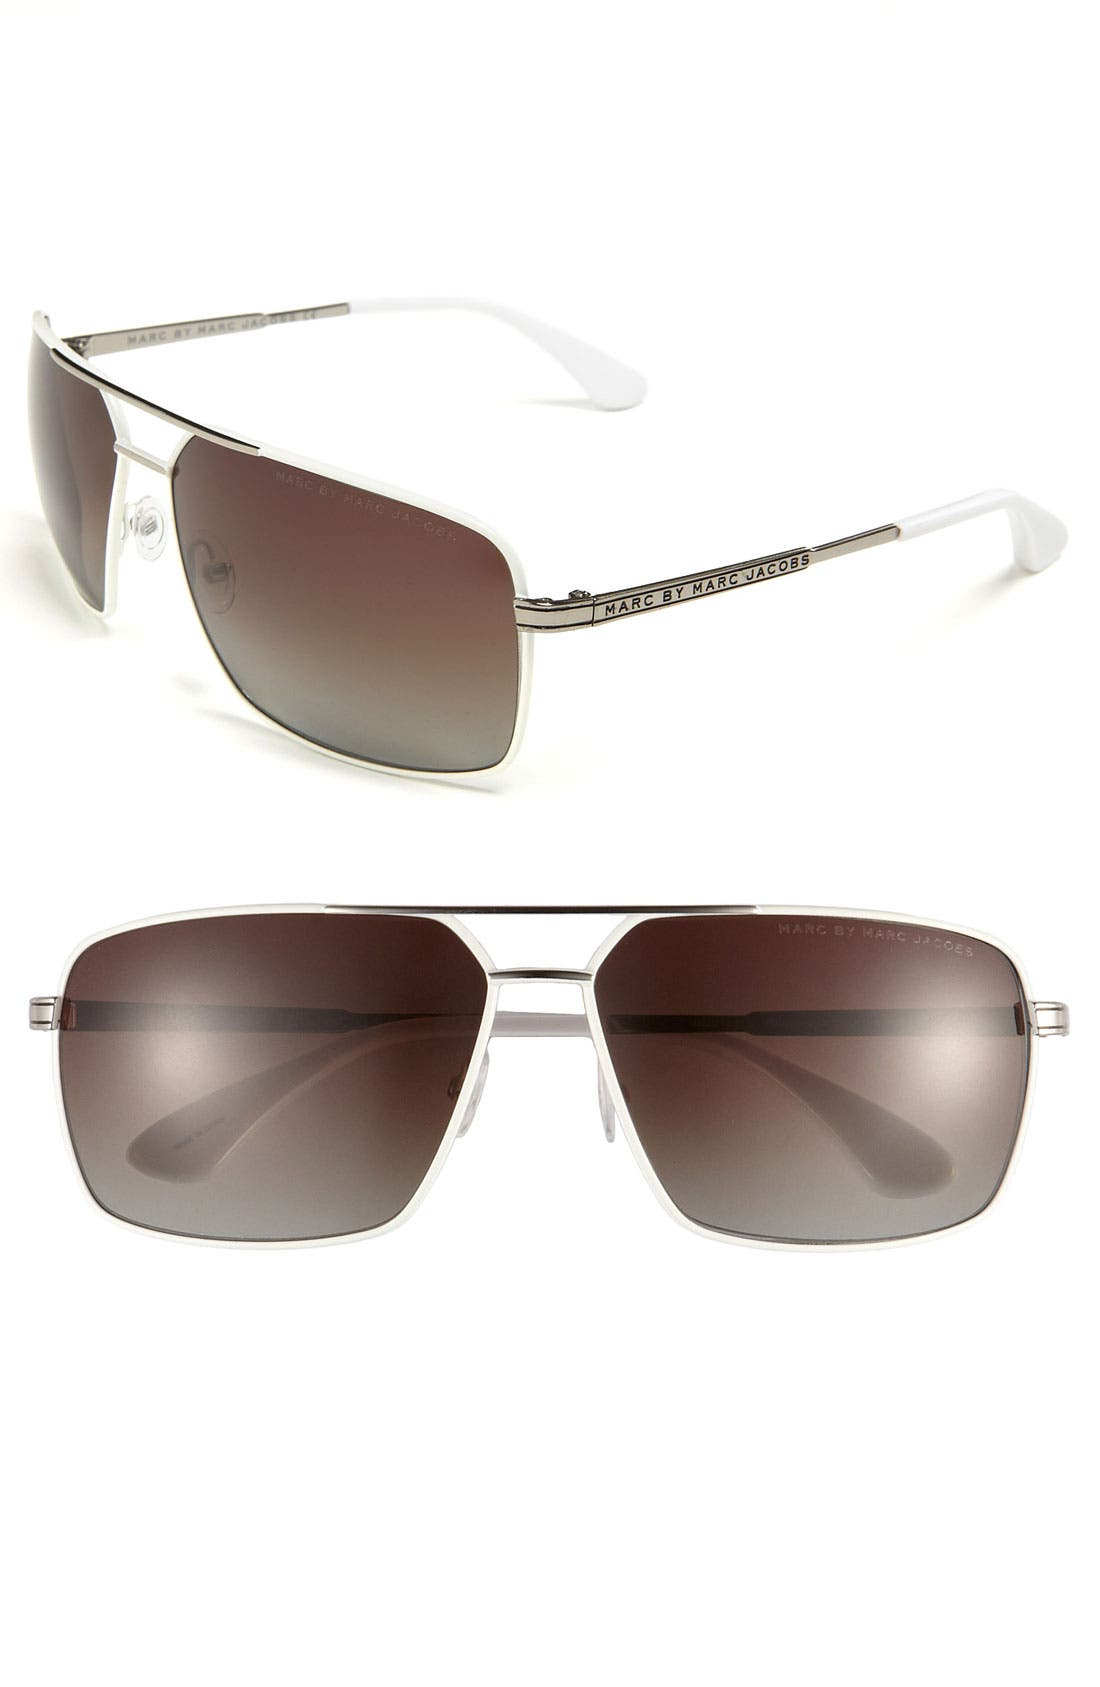 Alternate Image 1 Selected - MARC BY MARC JACOBS Polarized Aviator Sunglasses